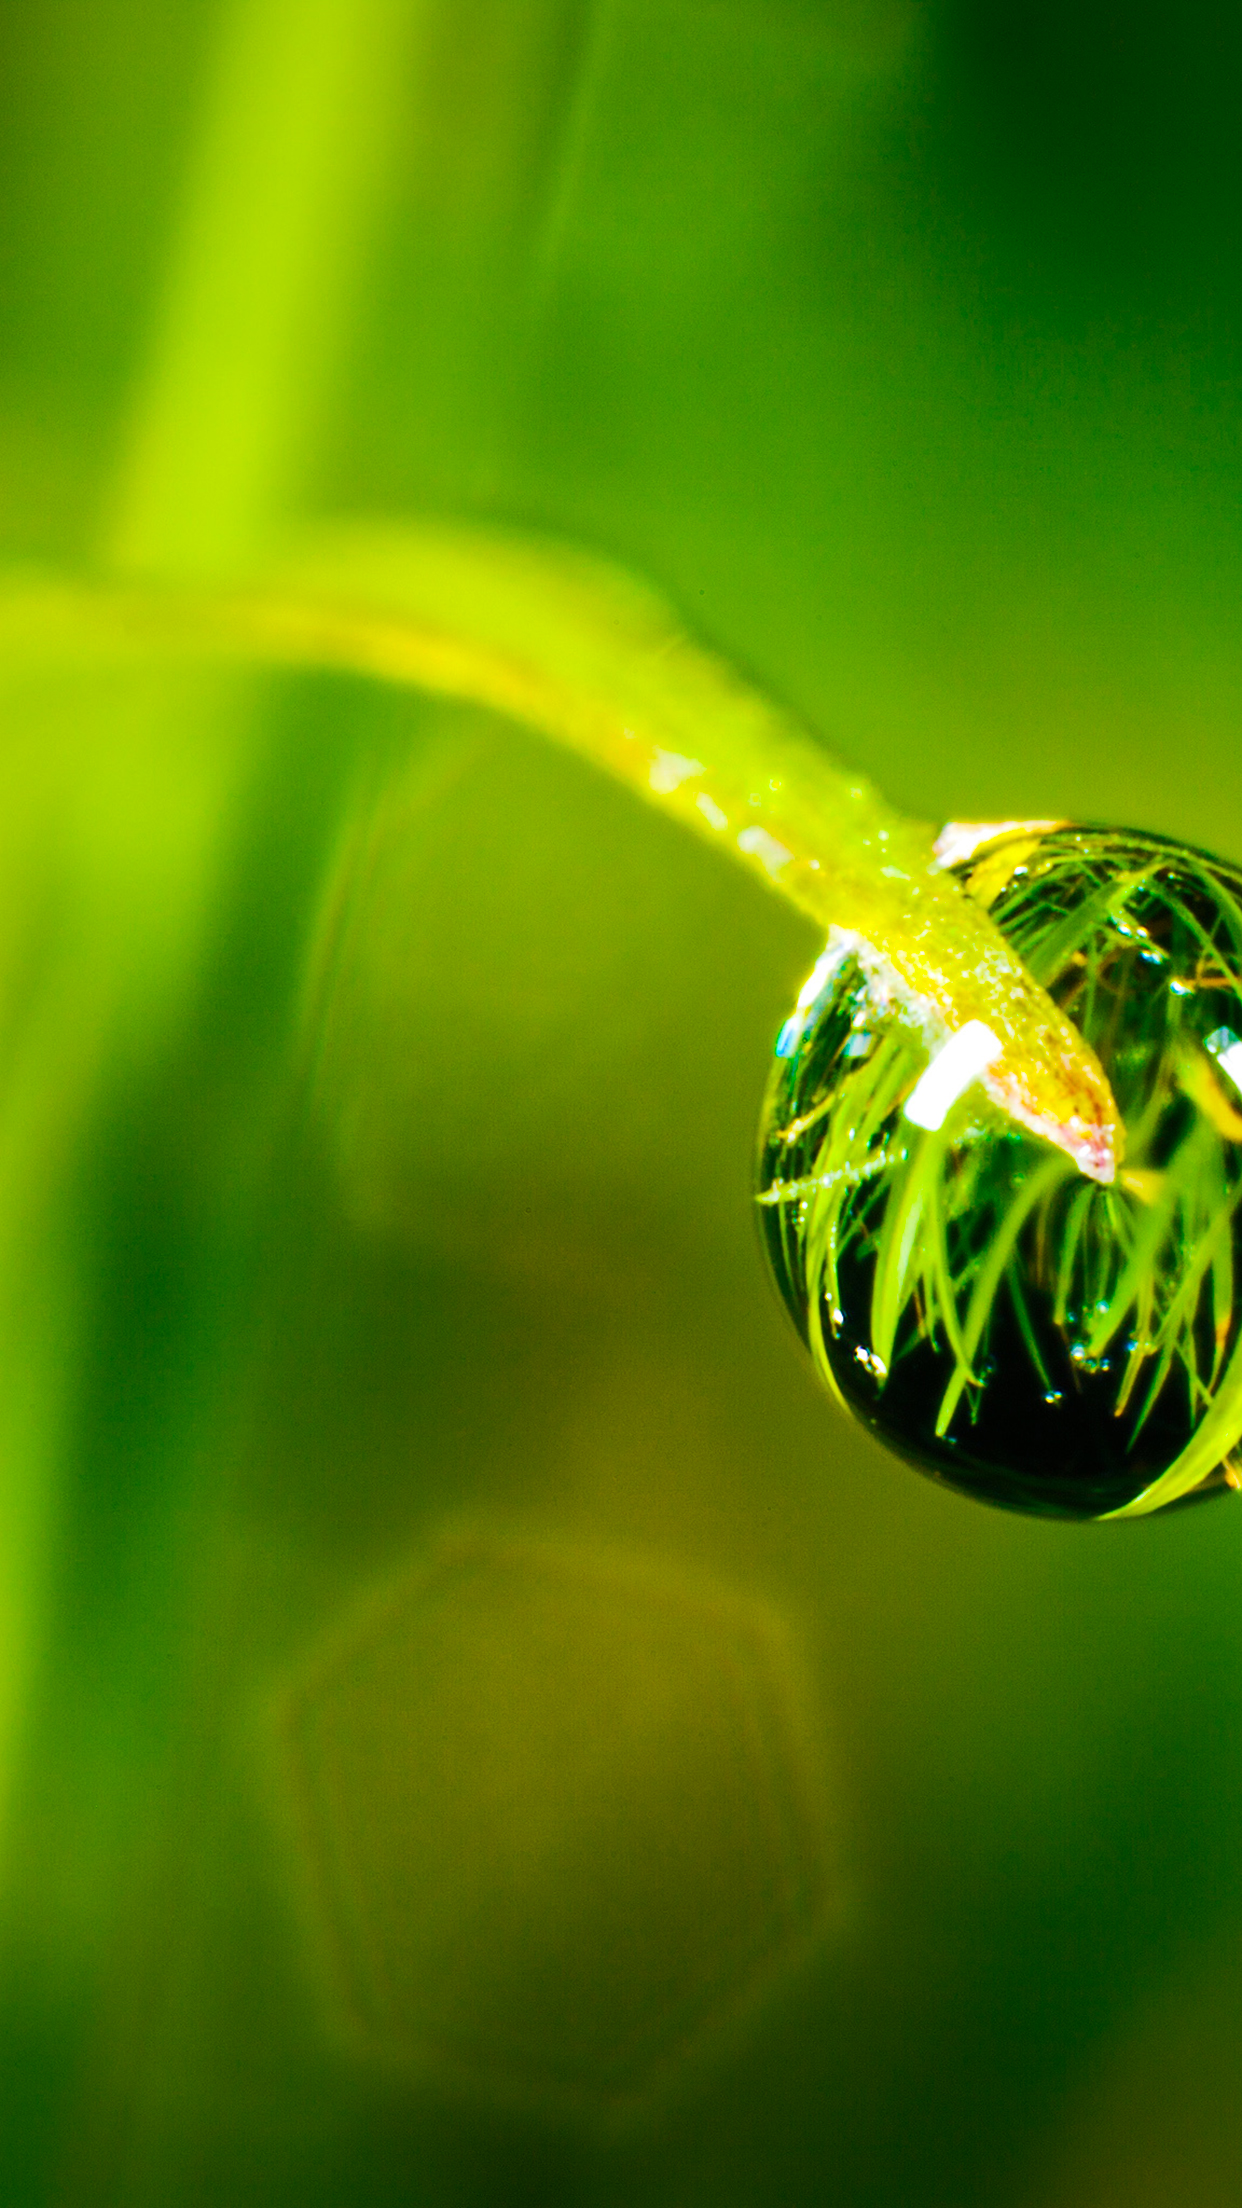 Dew Drop 3Wallpapers iPhone parallax Dew Drop